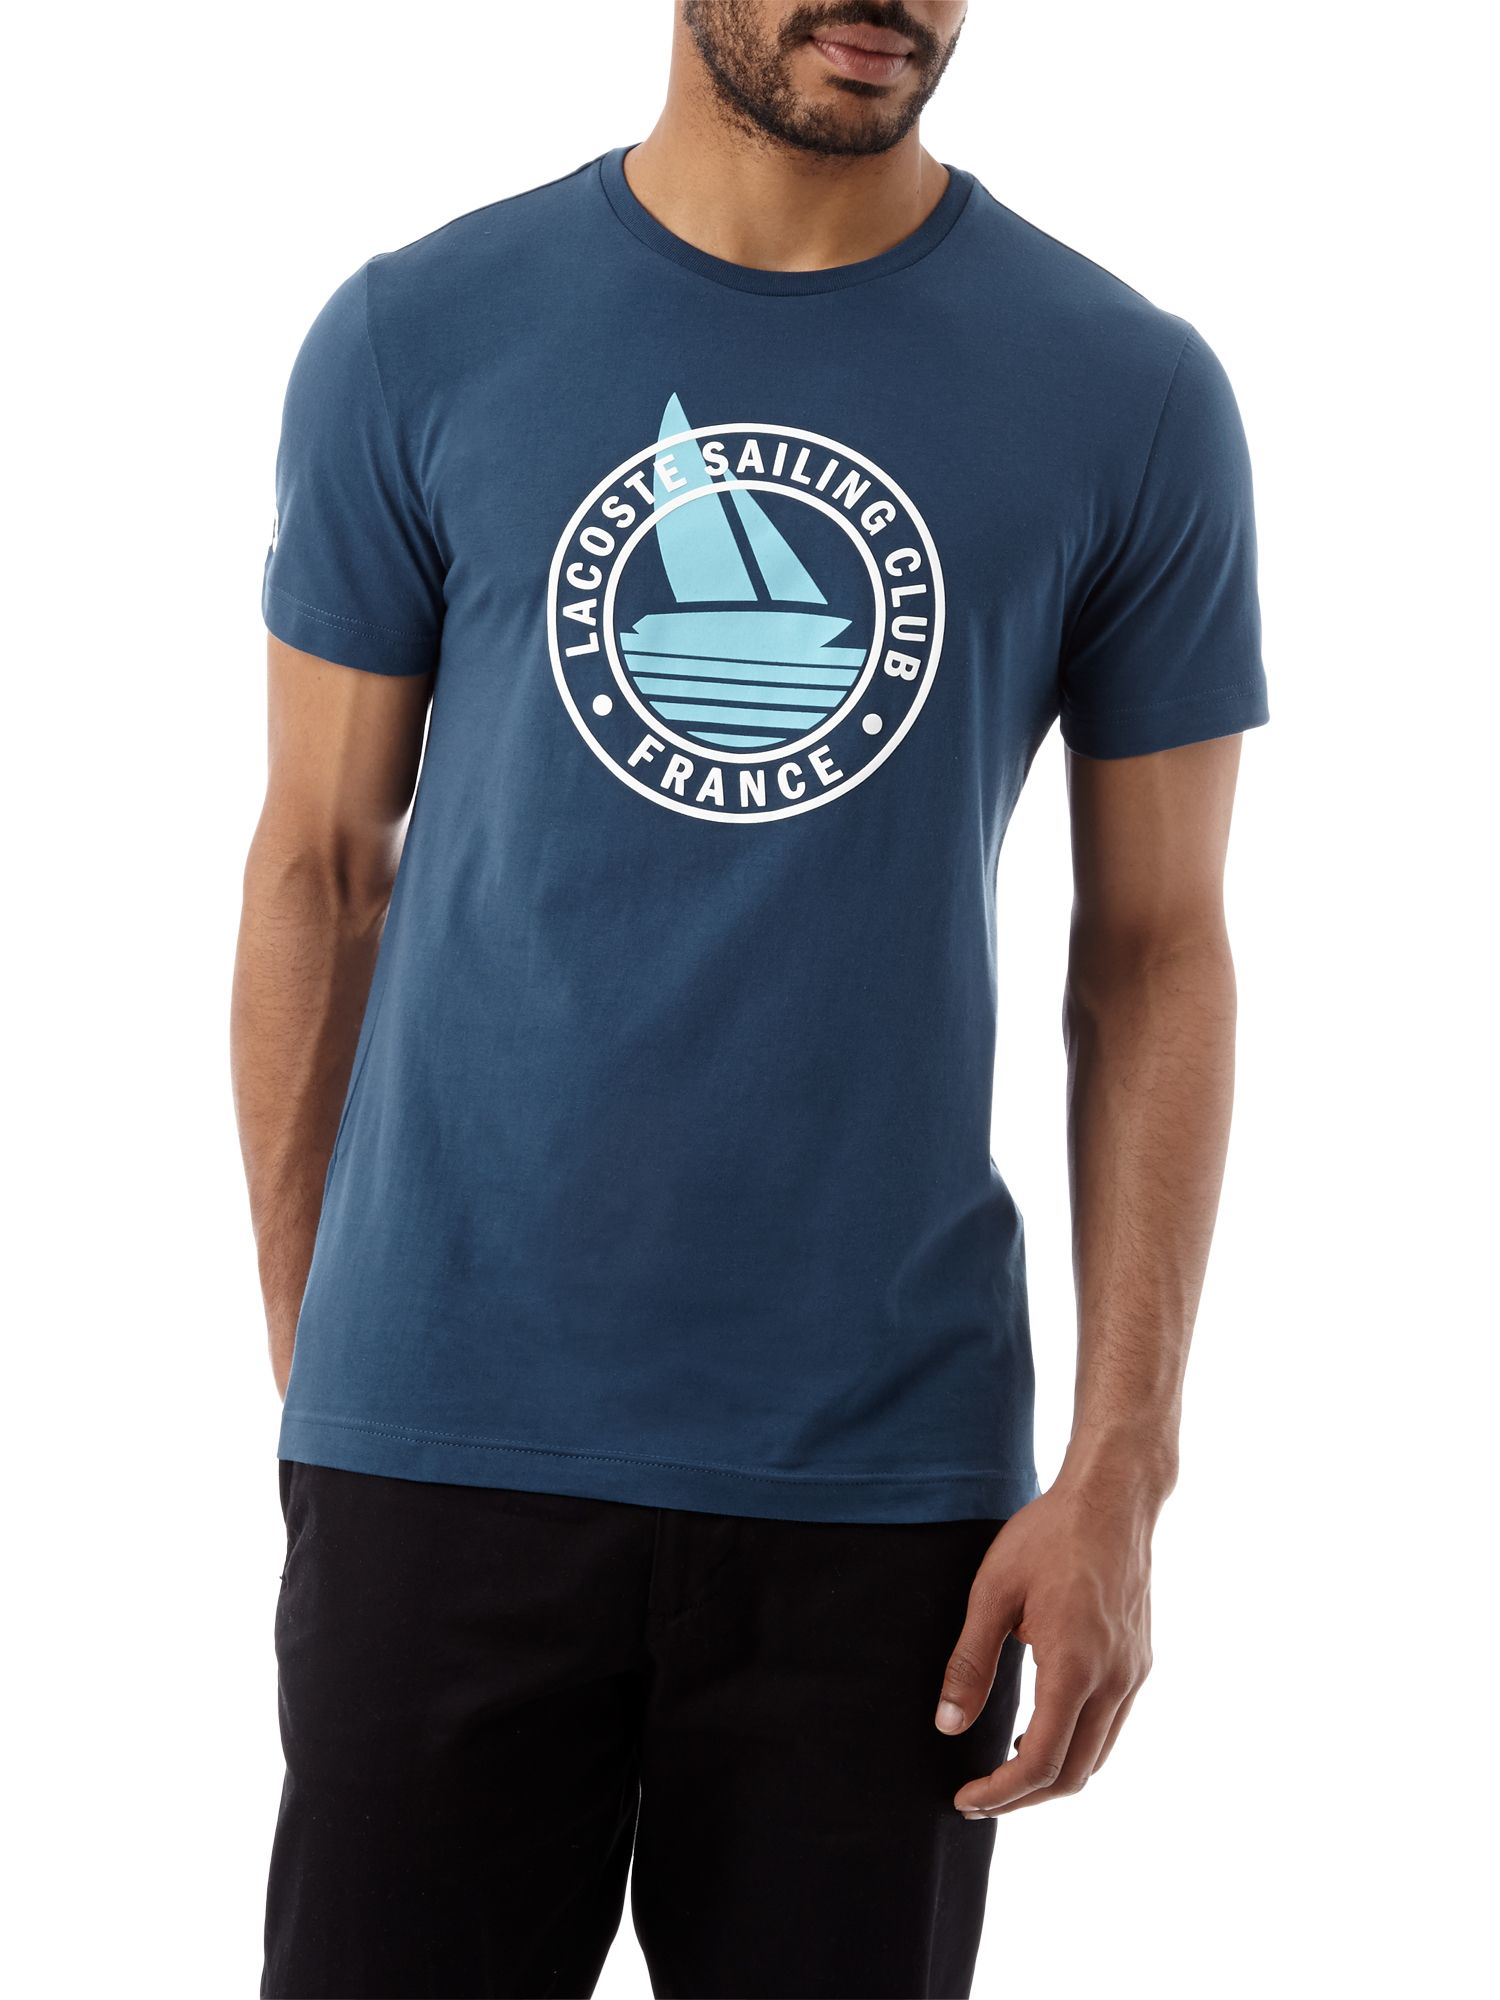 lacoste sailing club graphic regular fit t shirt in white for men. Black Bedroom Furniture Sets. Home Design Ideas